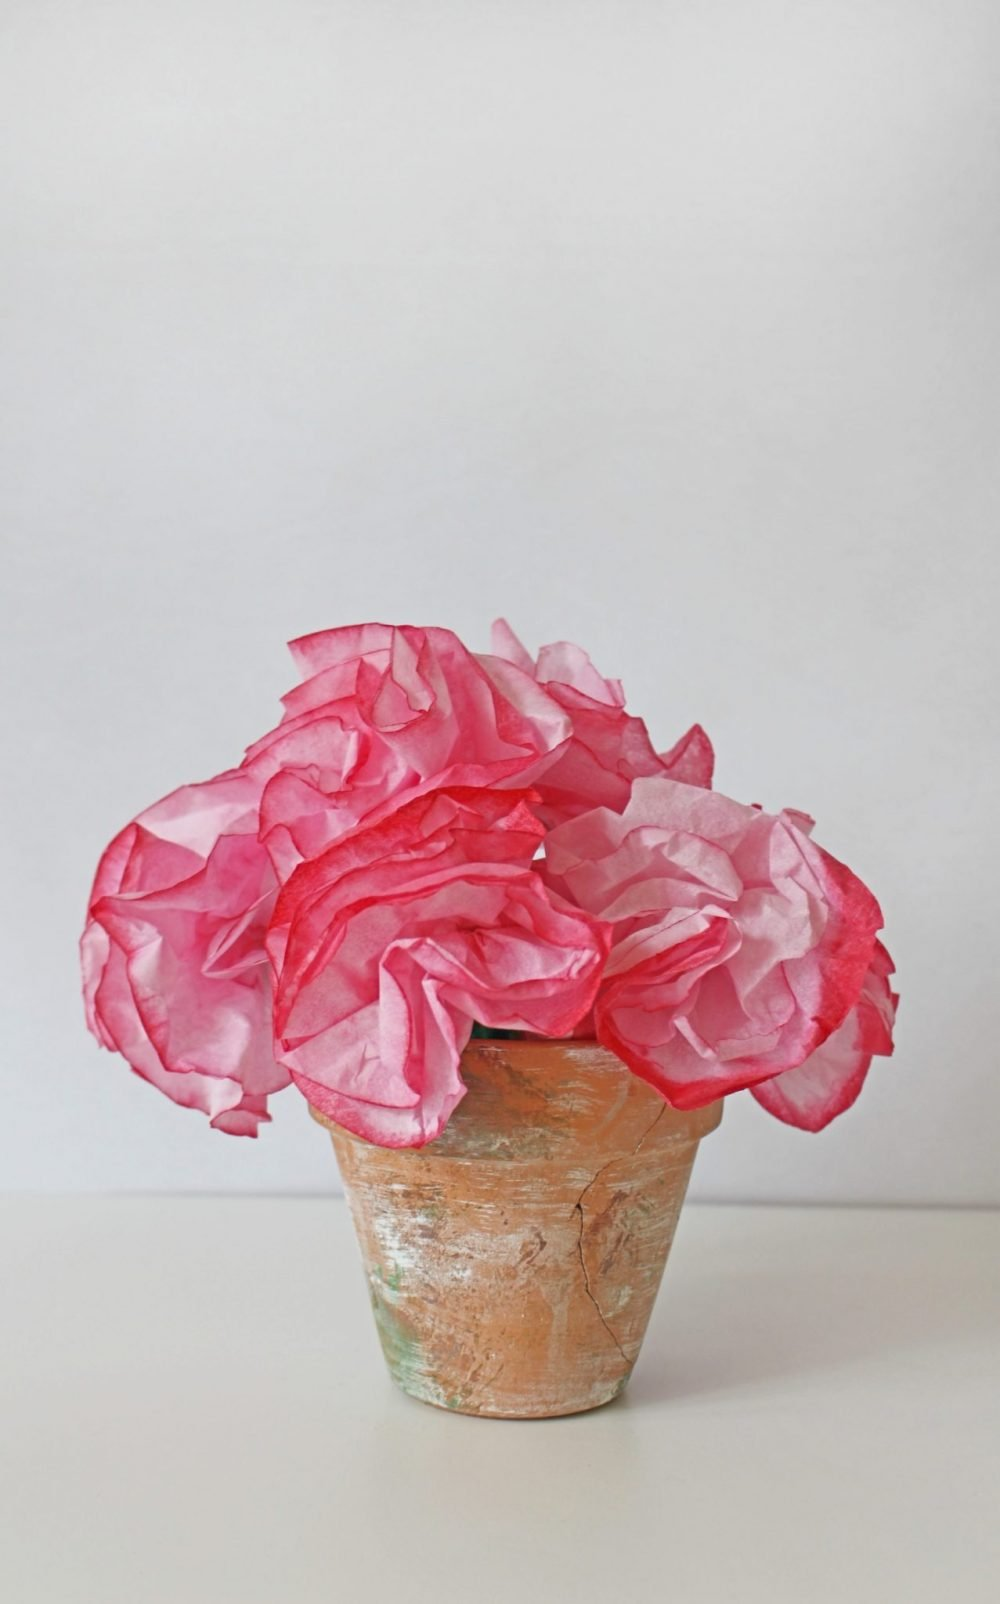 Bouquet of coffee filter flowers in a terracotta flower pot